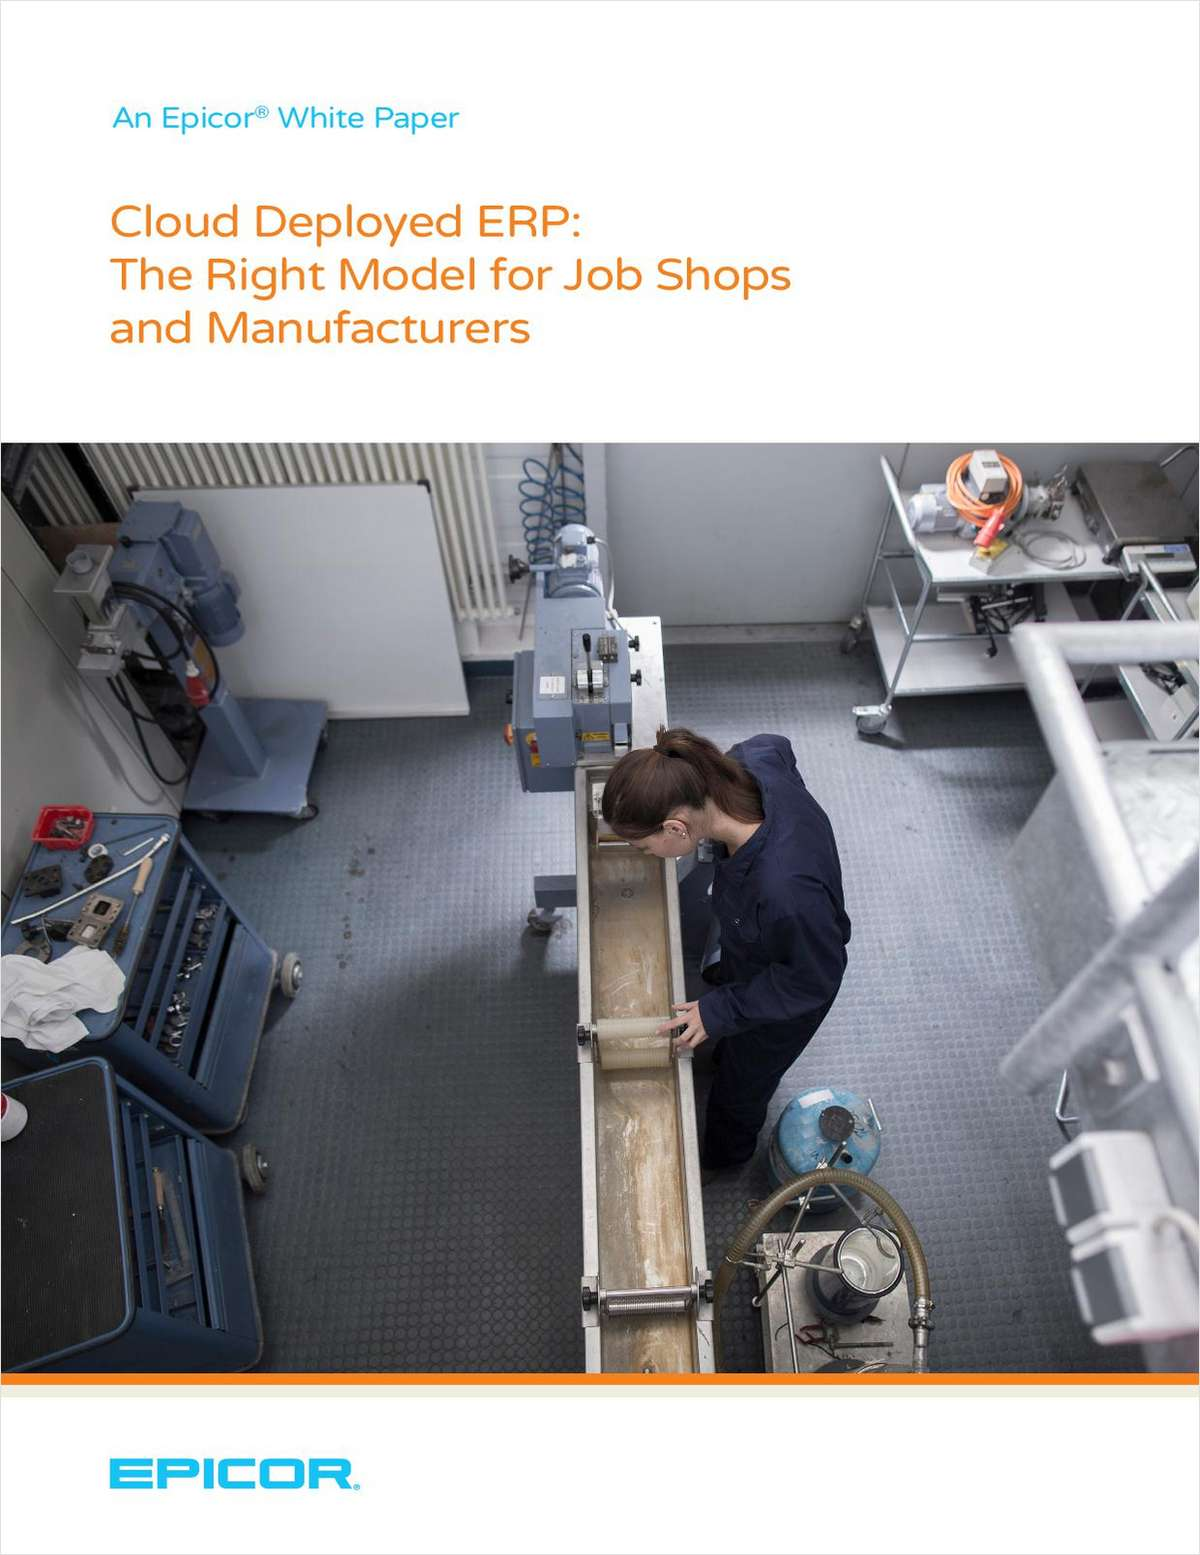 Cloud Deployed ERP:  The Right Model for Job Shops and Manufacturers